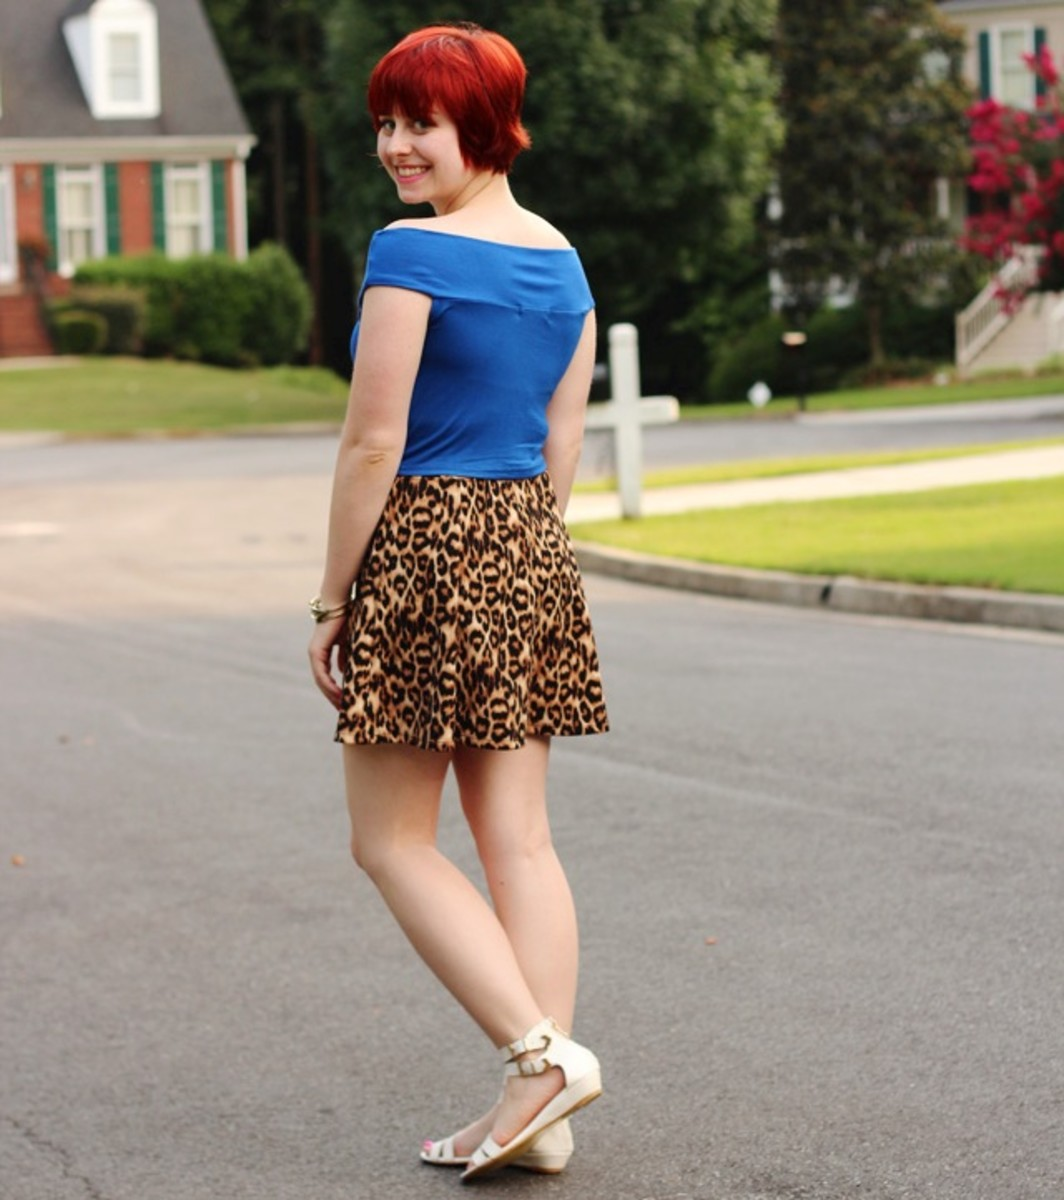 A patterned skater skirt is the perfect summer outfit.